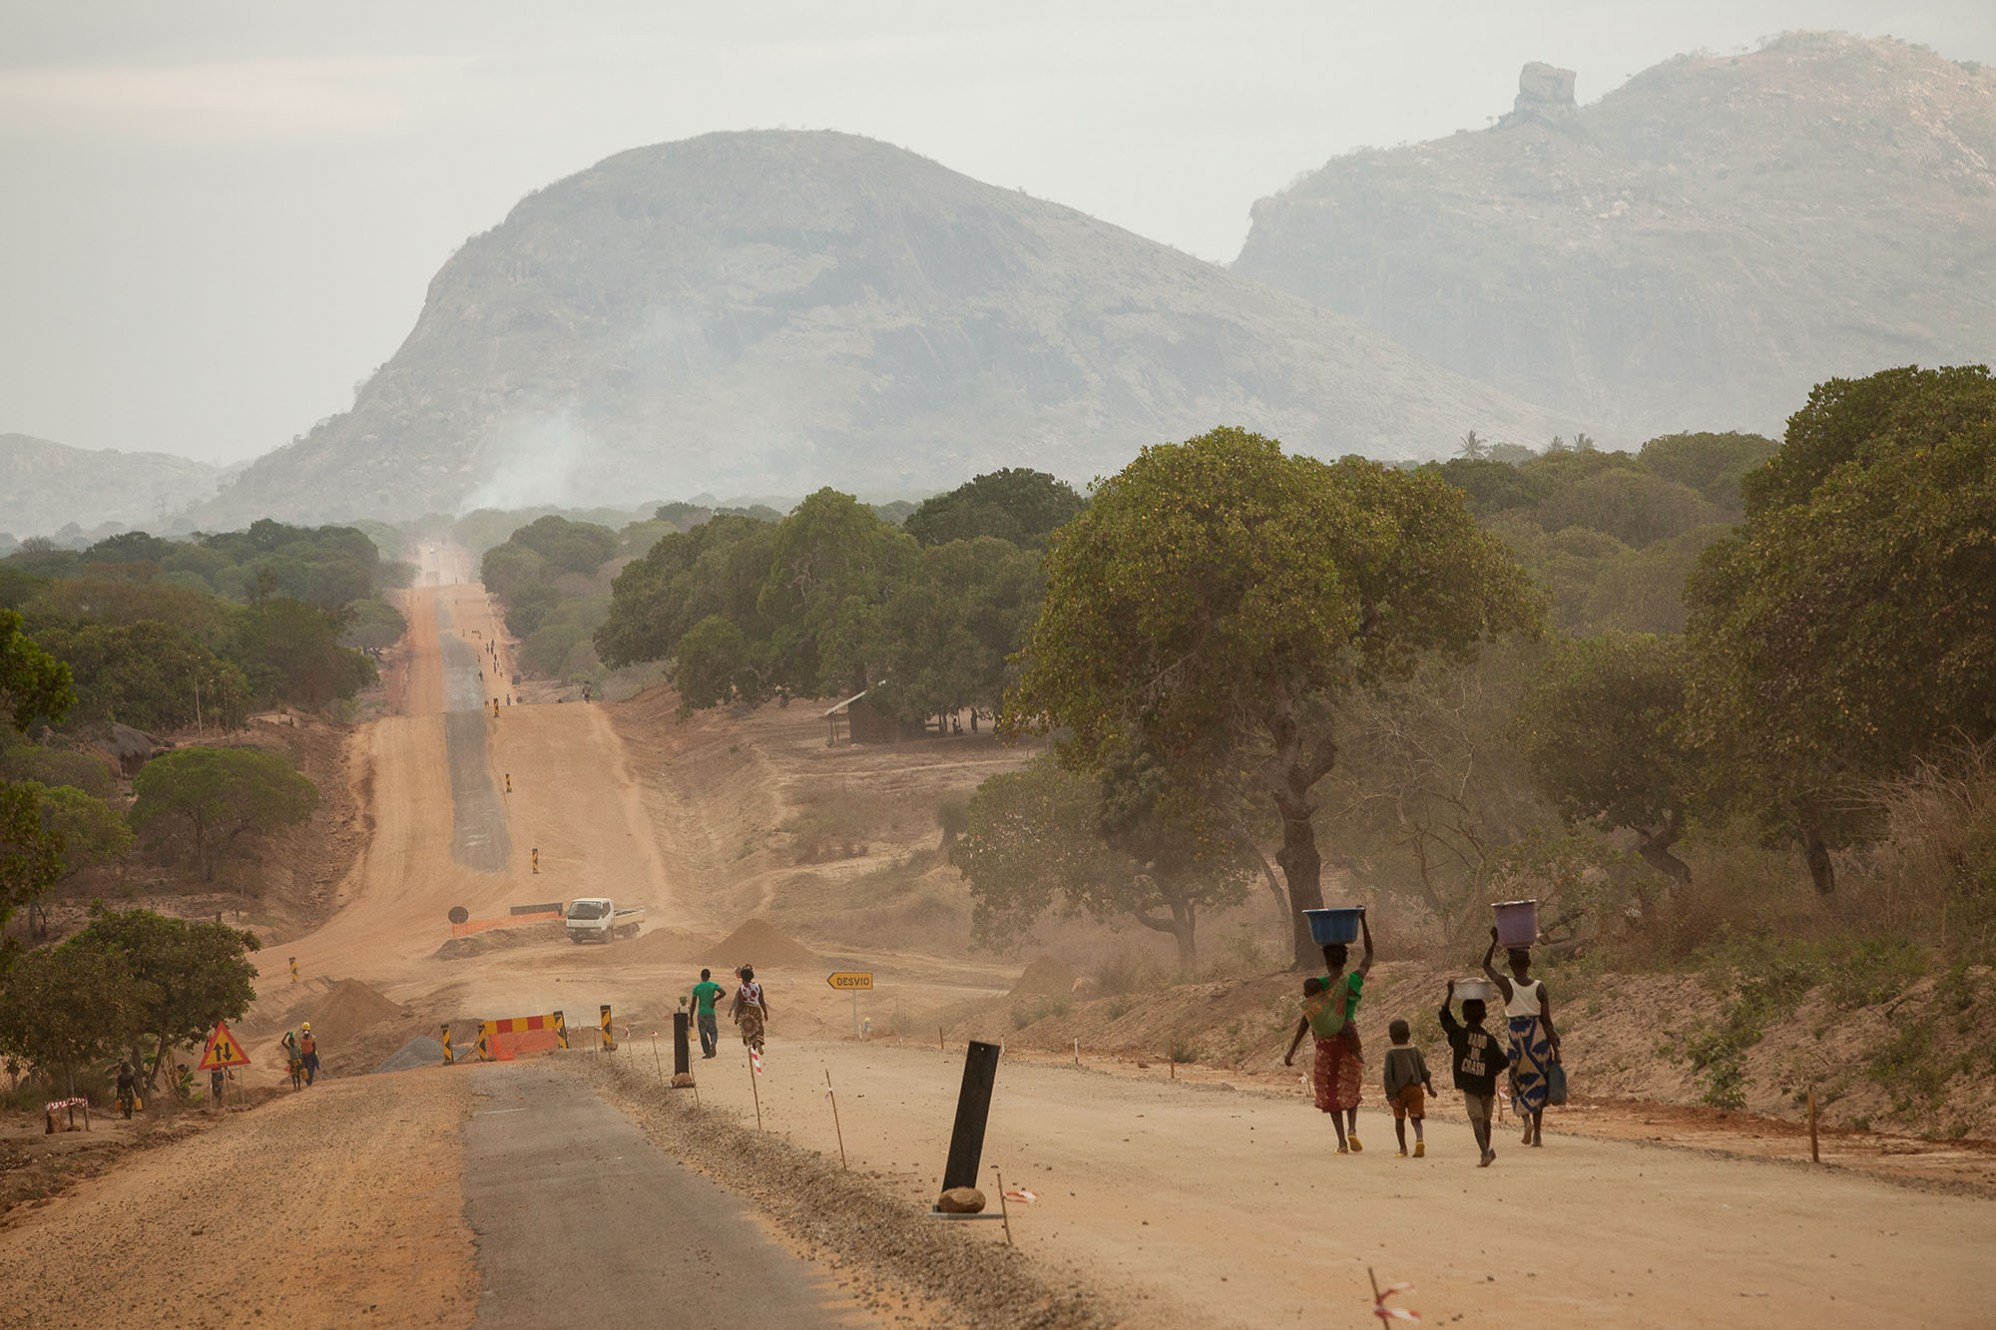 A new road is forged through the wilderness of northern Mozambique.